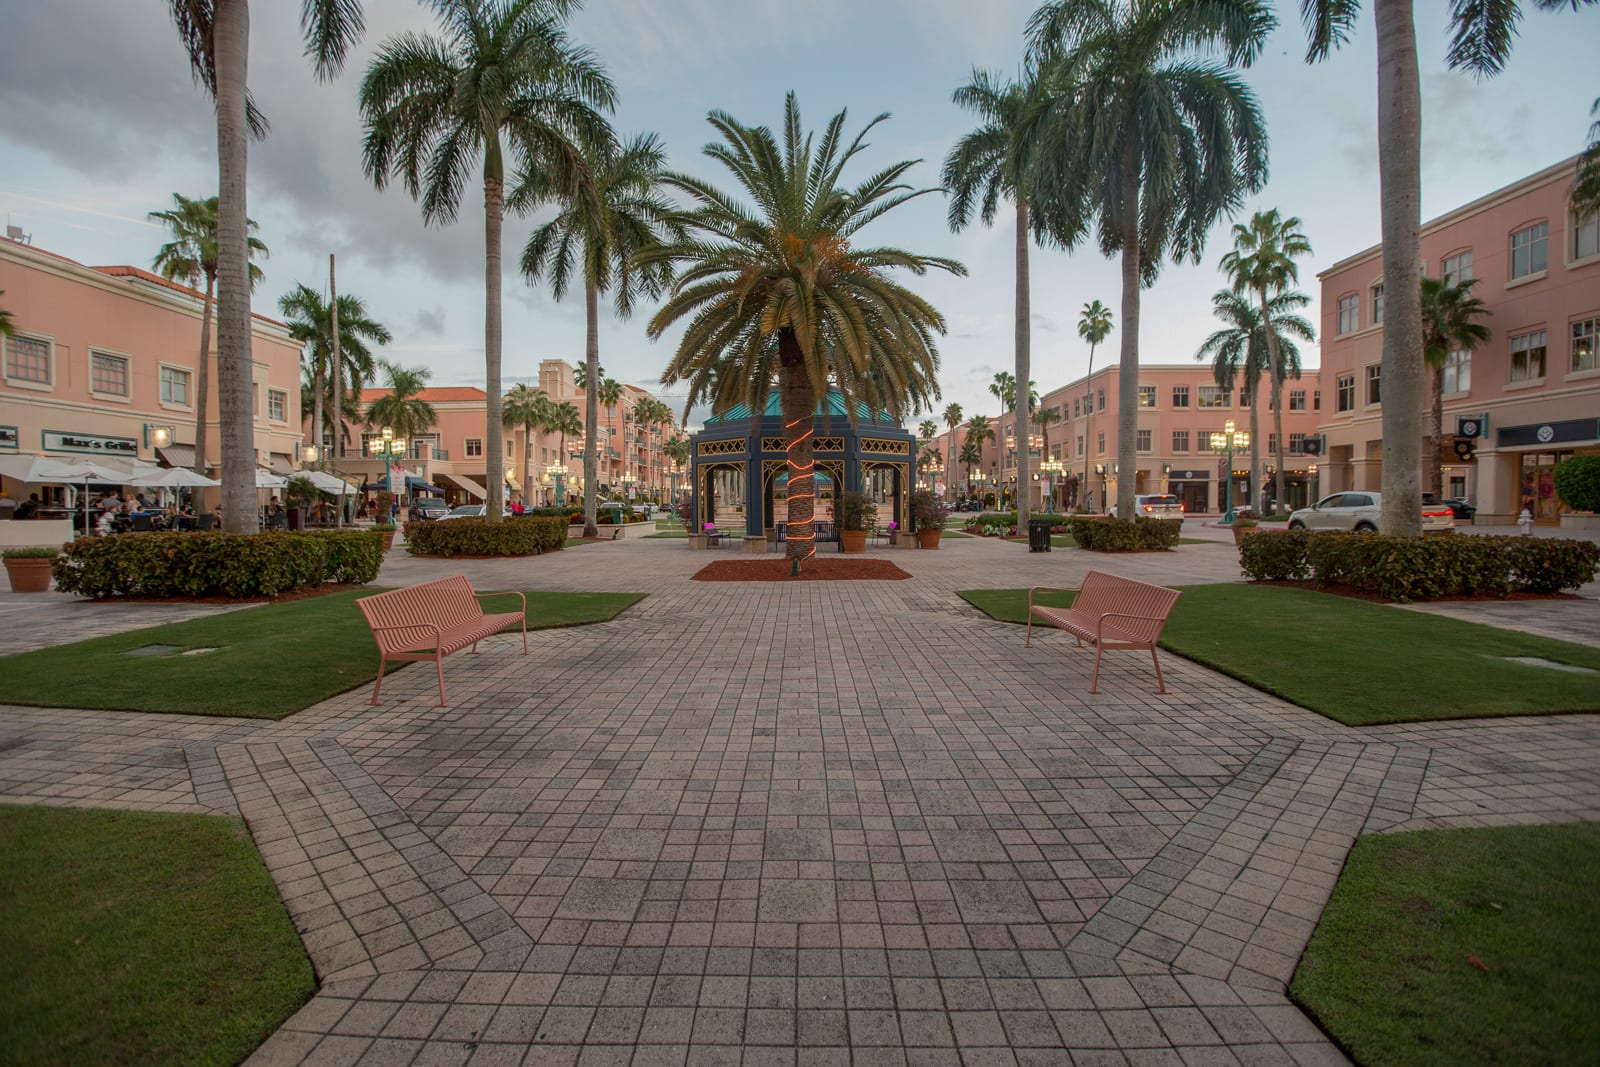 Fall in Love with Your New Neighborhood at Allure by Windsor, 6750 Congress Avenue, Boca Raton